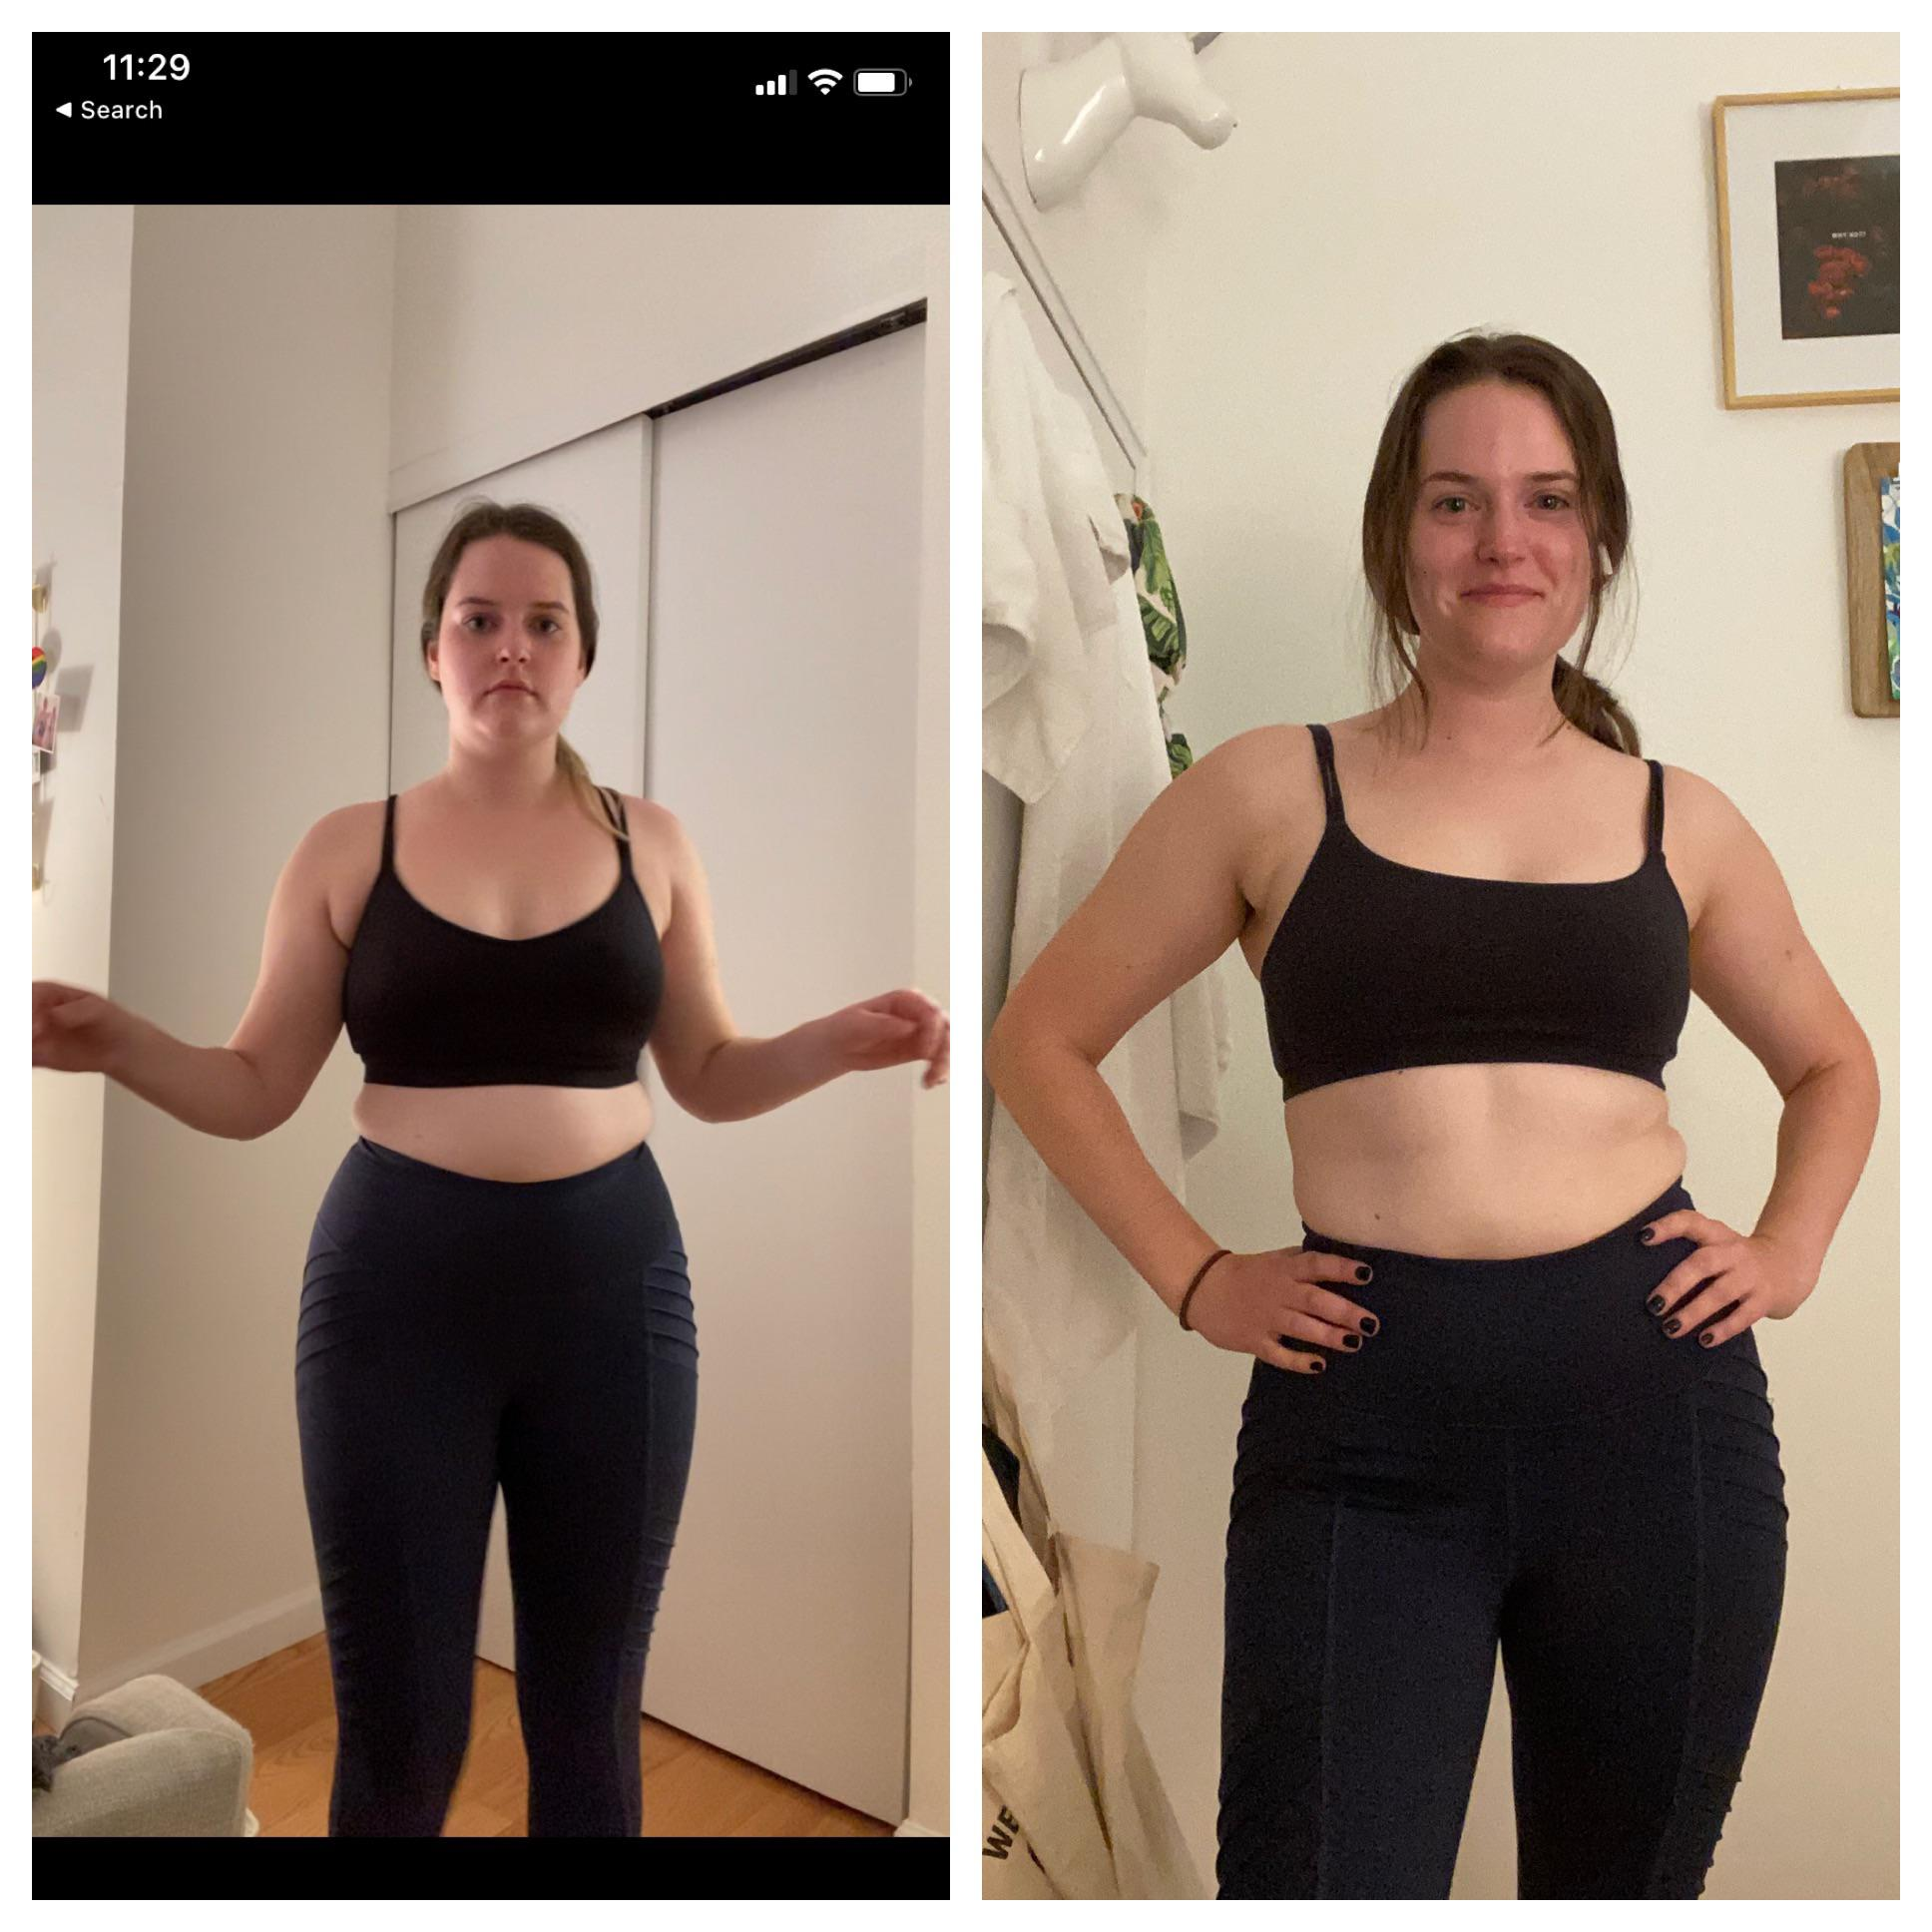 5 feet 7 Female Before and After 25 lbs Weight Loss 170 lbs to 145 lbs